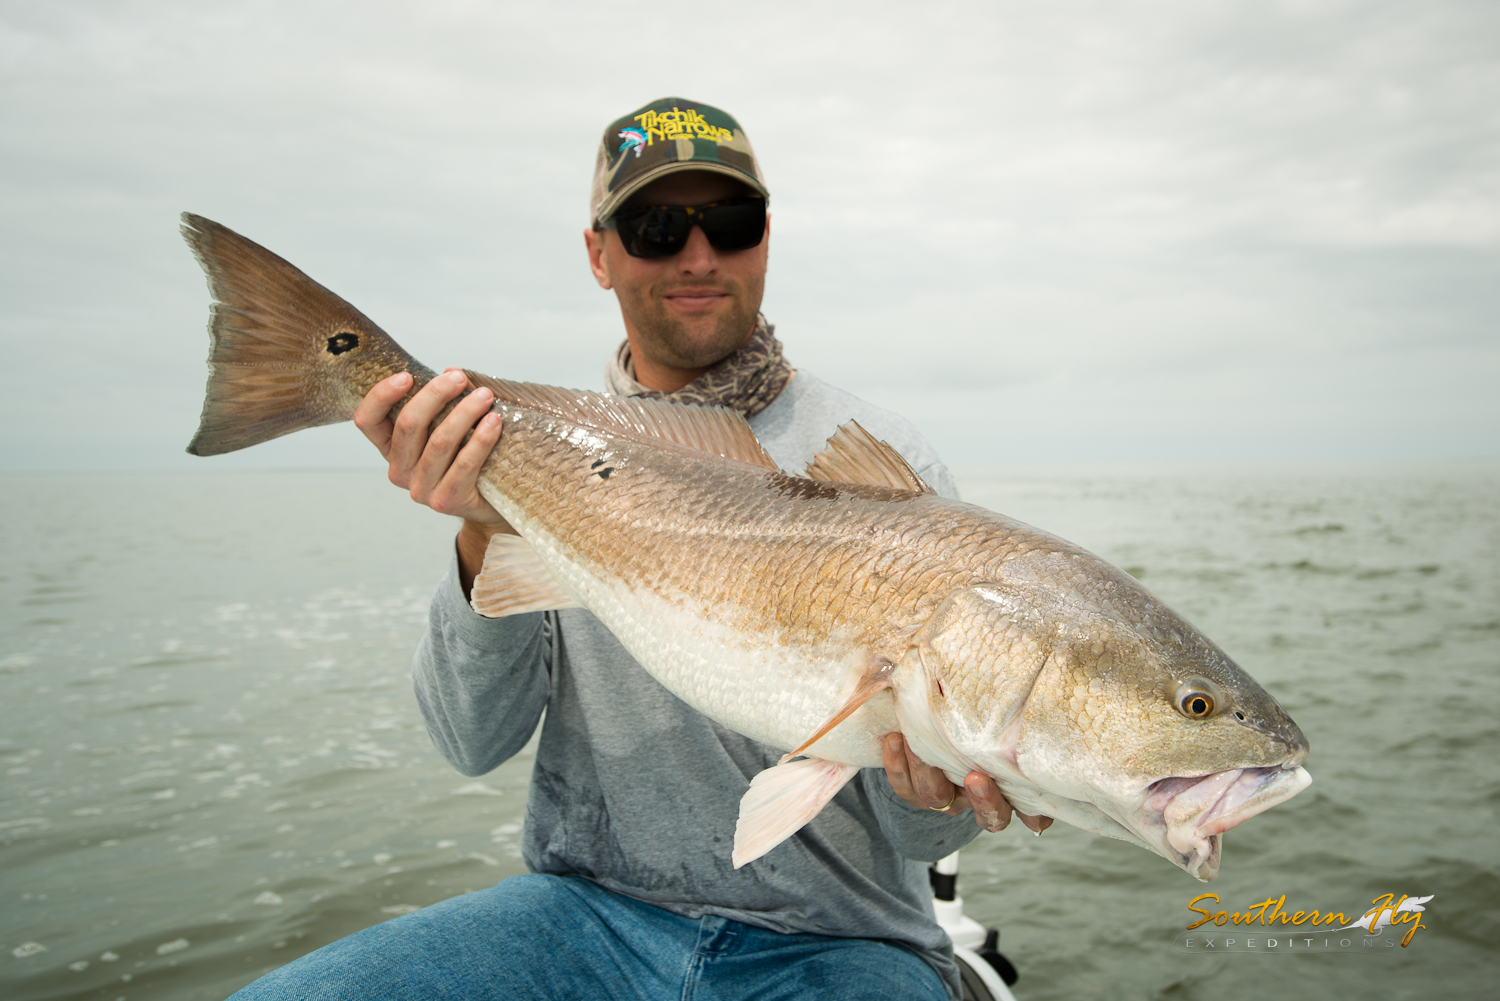 Oklahoma Anglers Fly Fishing New Orleans by Southern Fly Expeditions